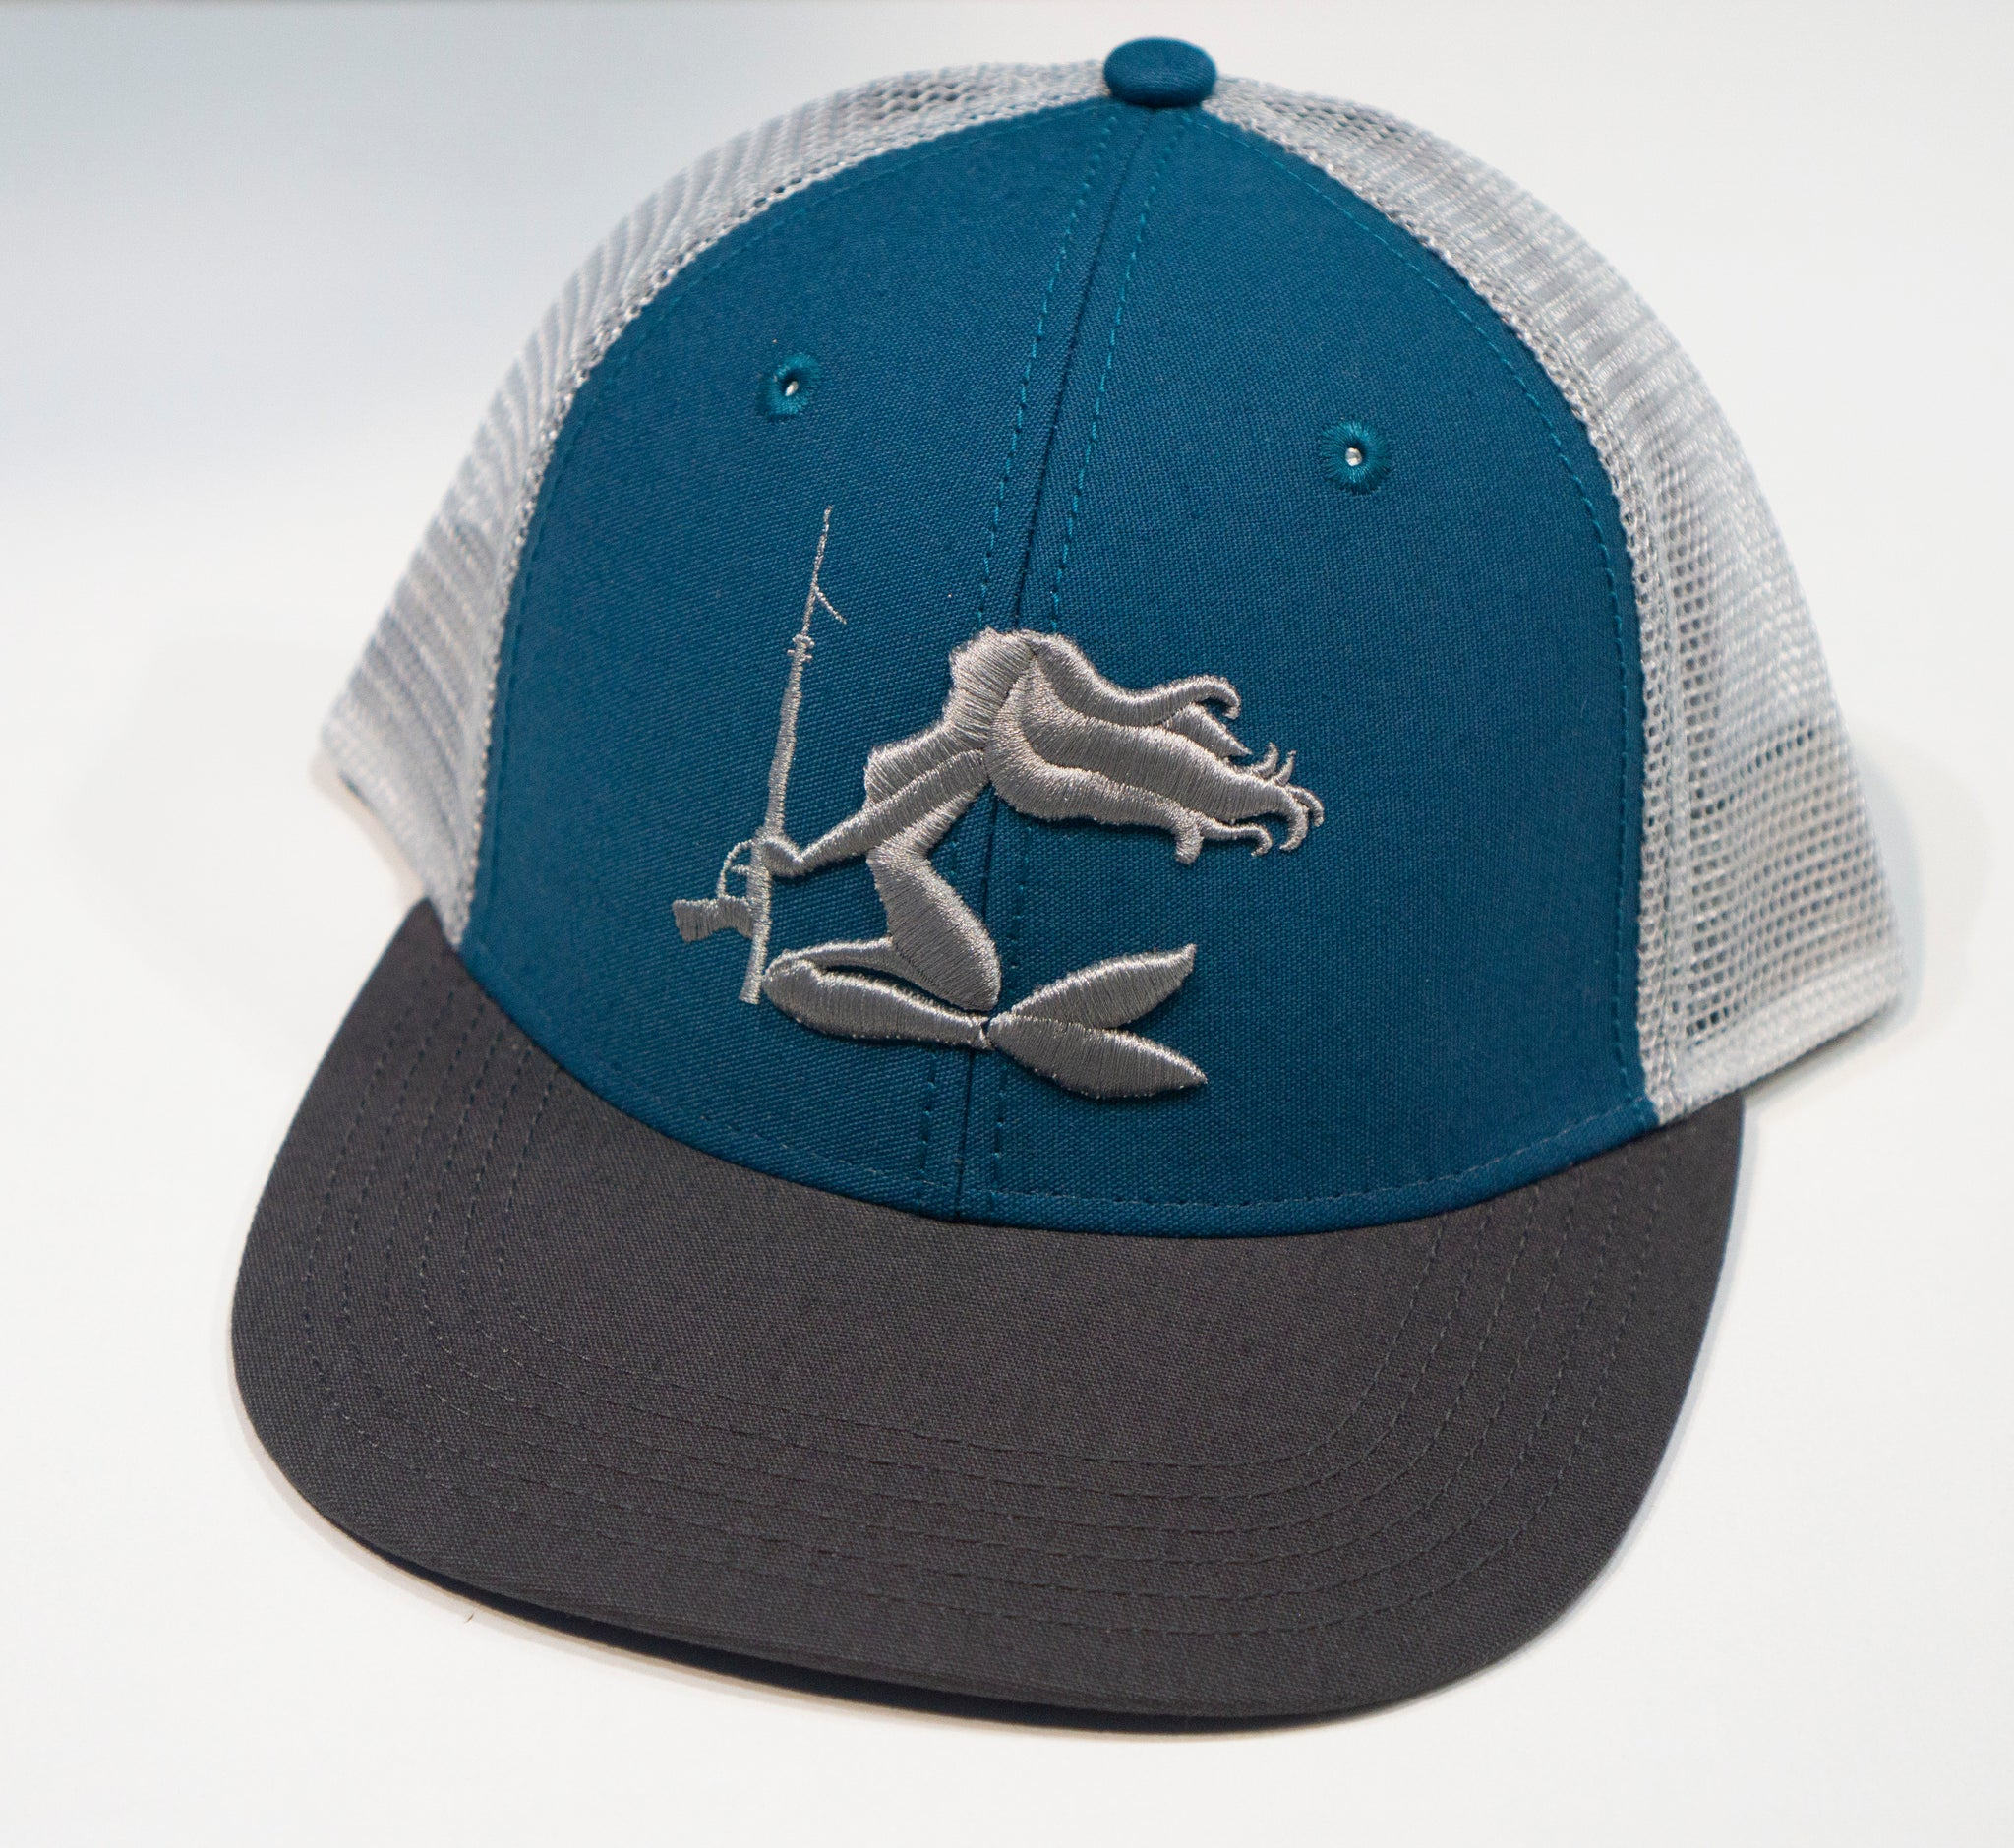 50633a1cca3c5 Spearfishing Mermaid Trucker  Spearfishing Mermaid Trucker ...